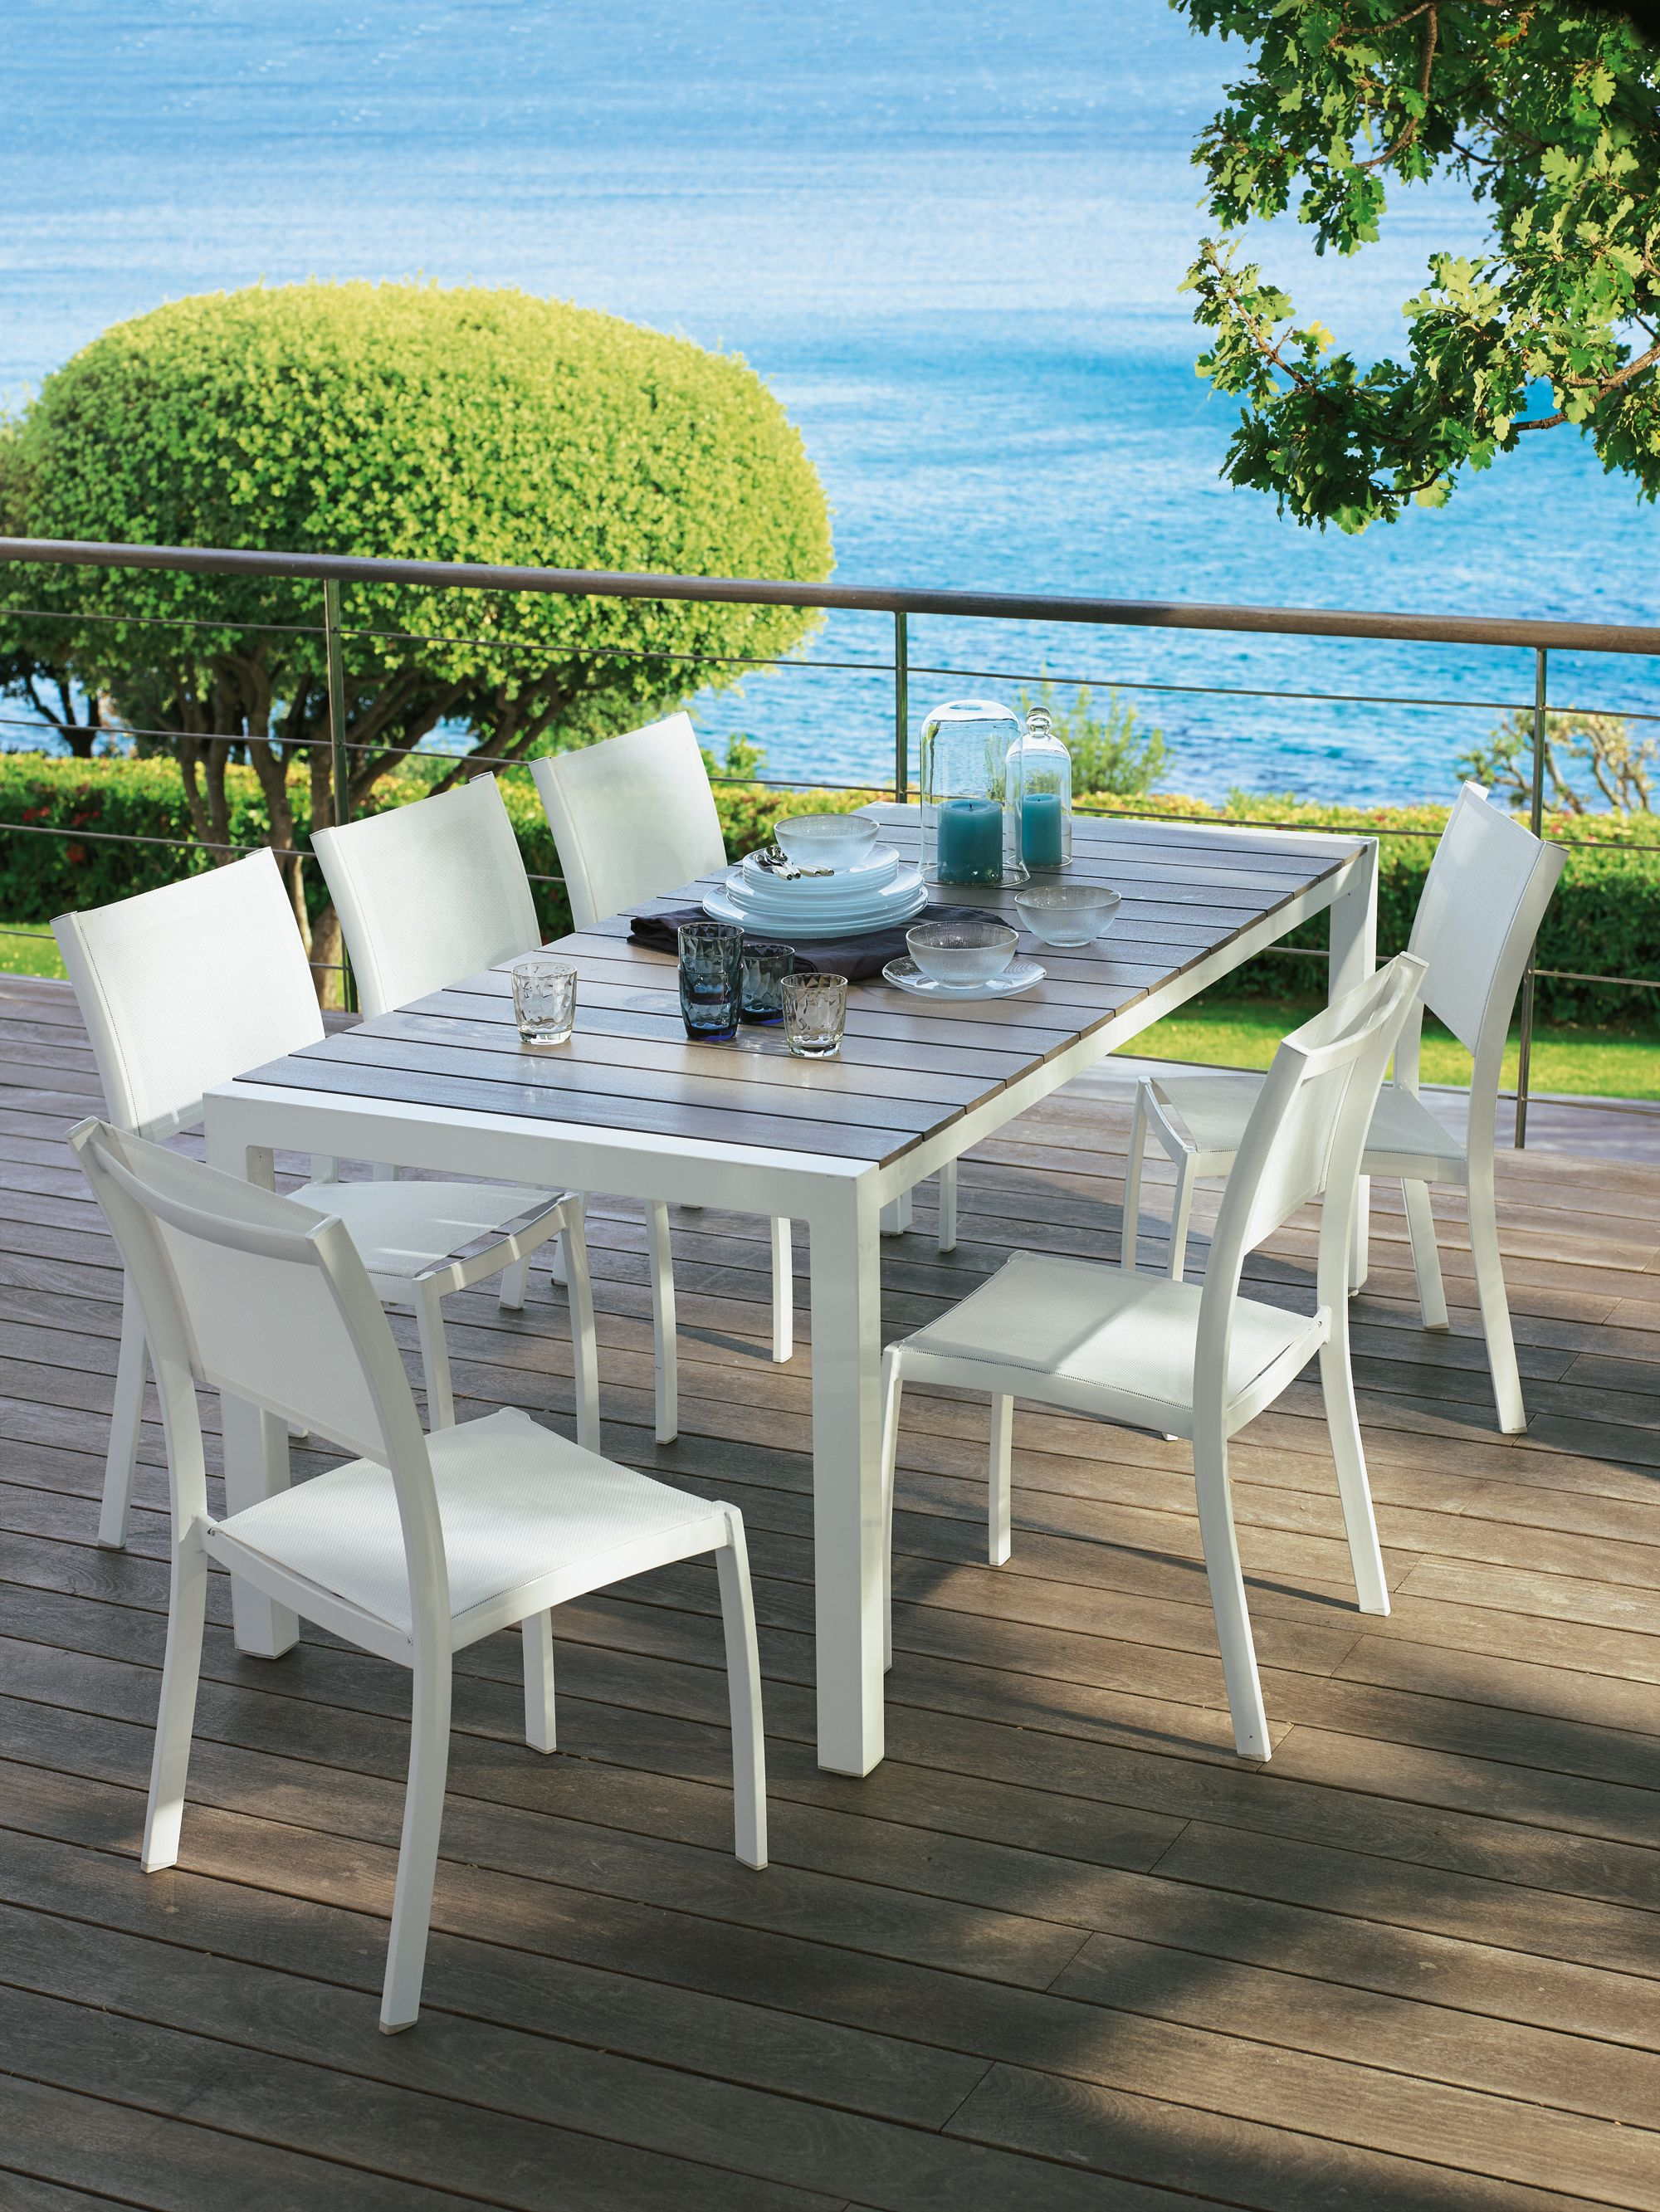 Alinea Table De Jardin Table De Jardin 8 Couverts Lathy Http Alinea Fr Lathy